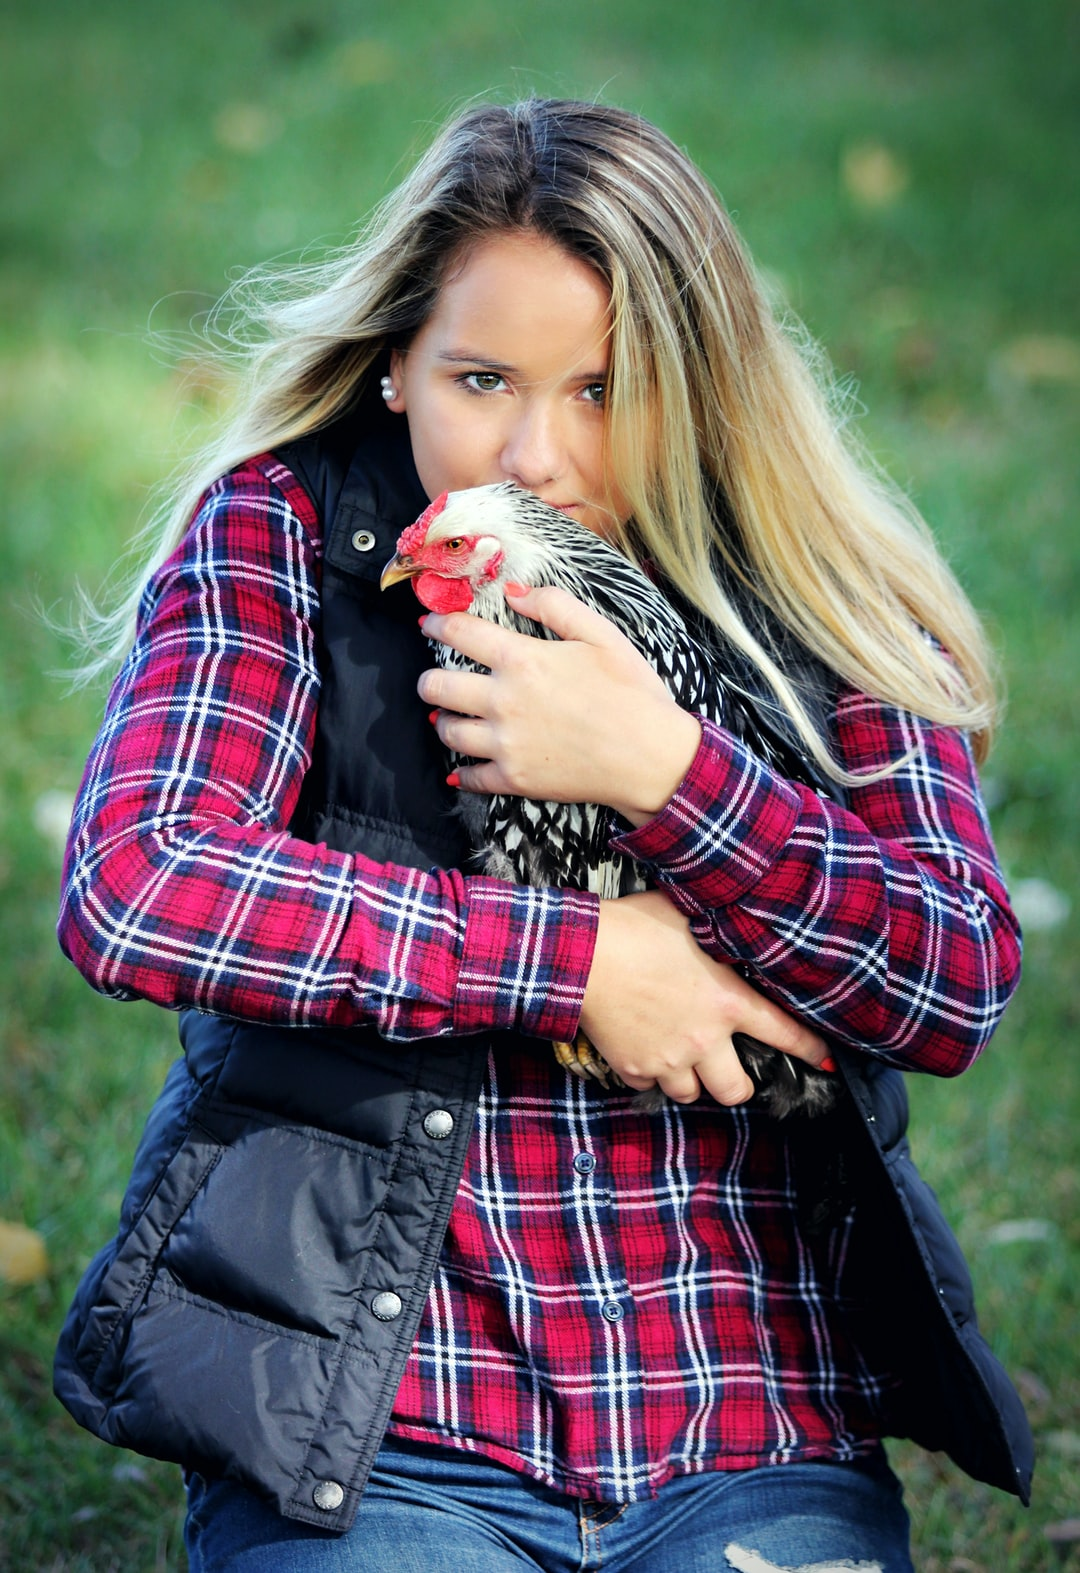 A girl kisses a chicken in the grass while wearing a red flannel shirt and blue jeans.